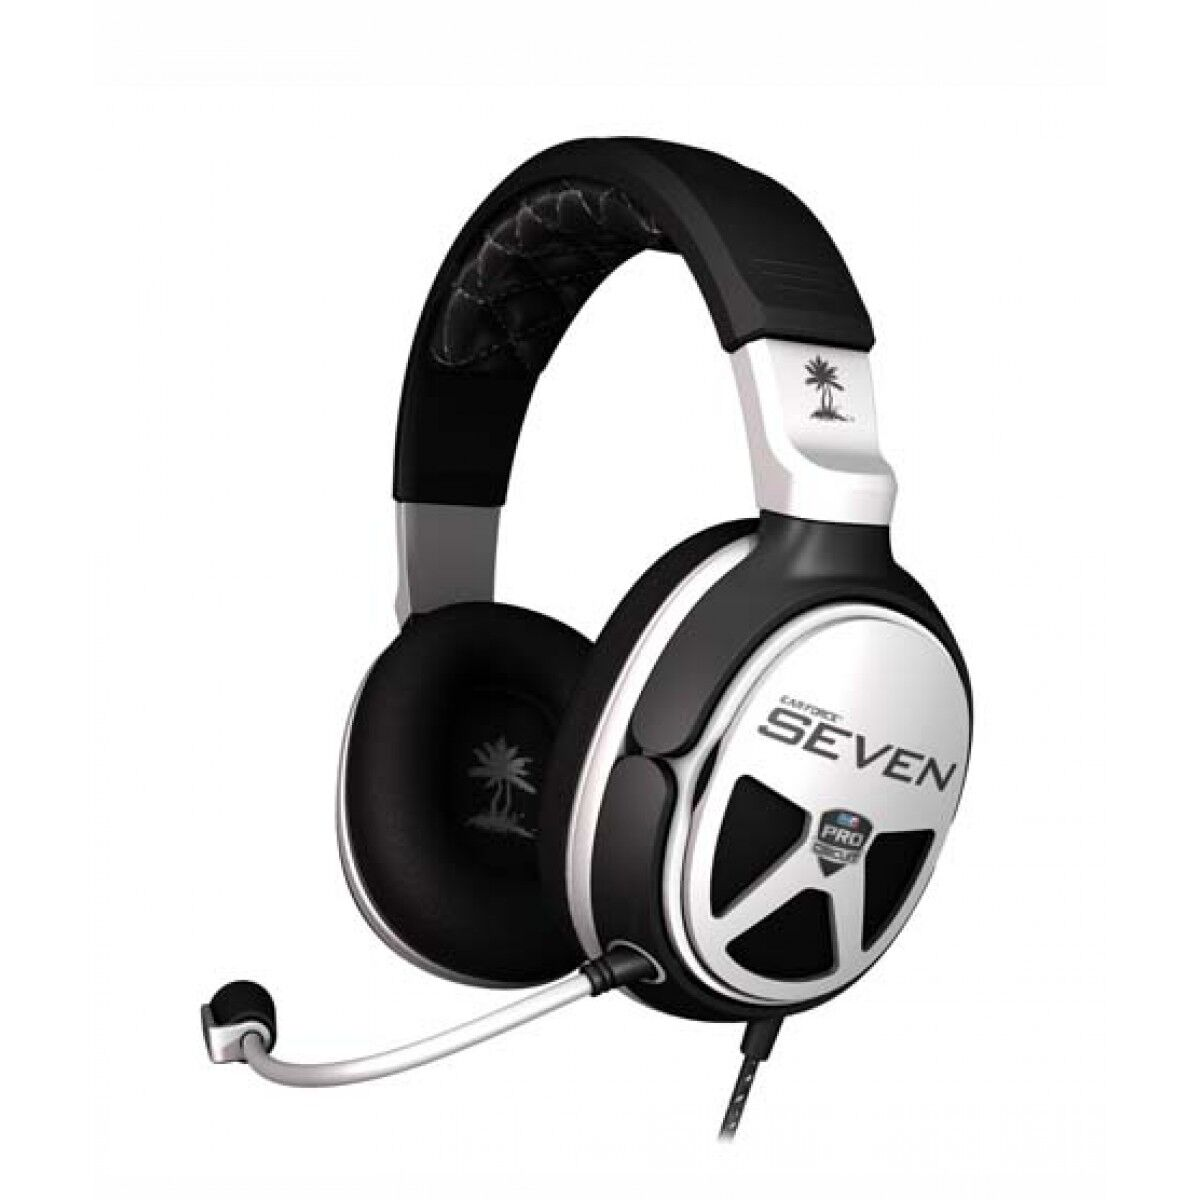 Turtle Beach Ear Force XP Seven Over-Ear Gaming Headset